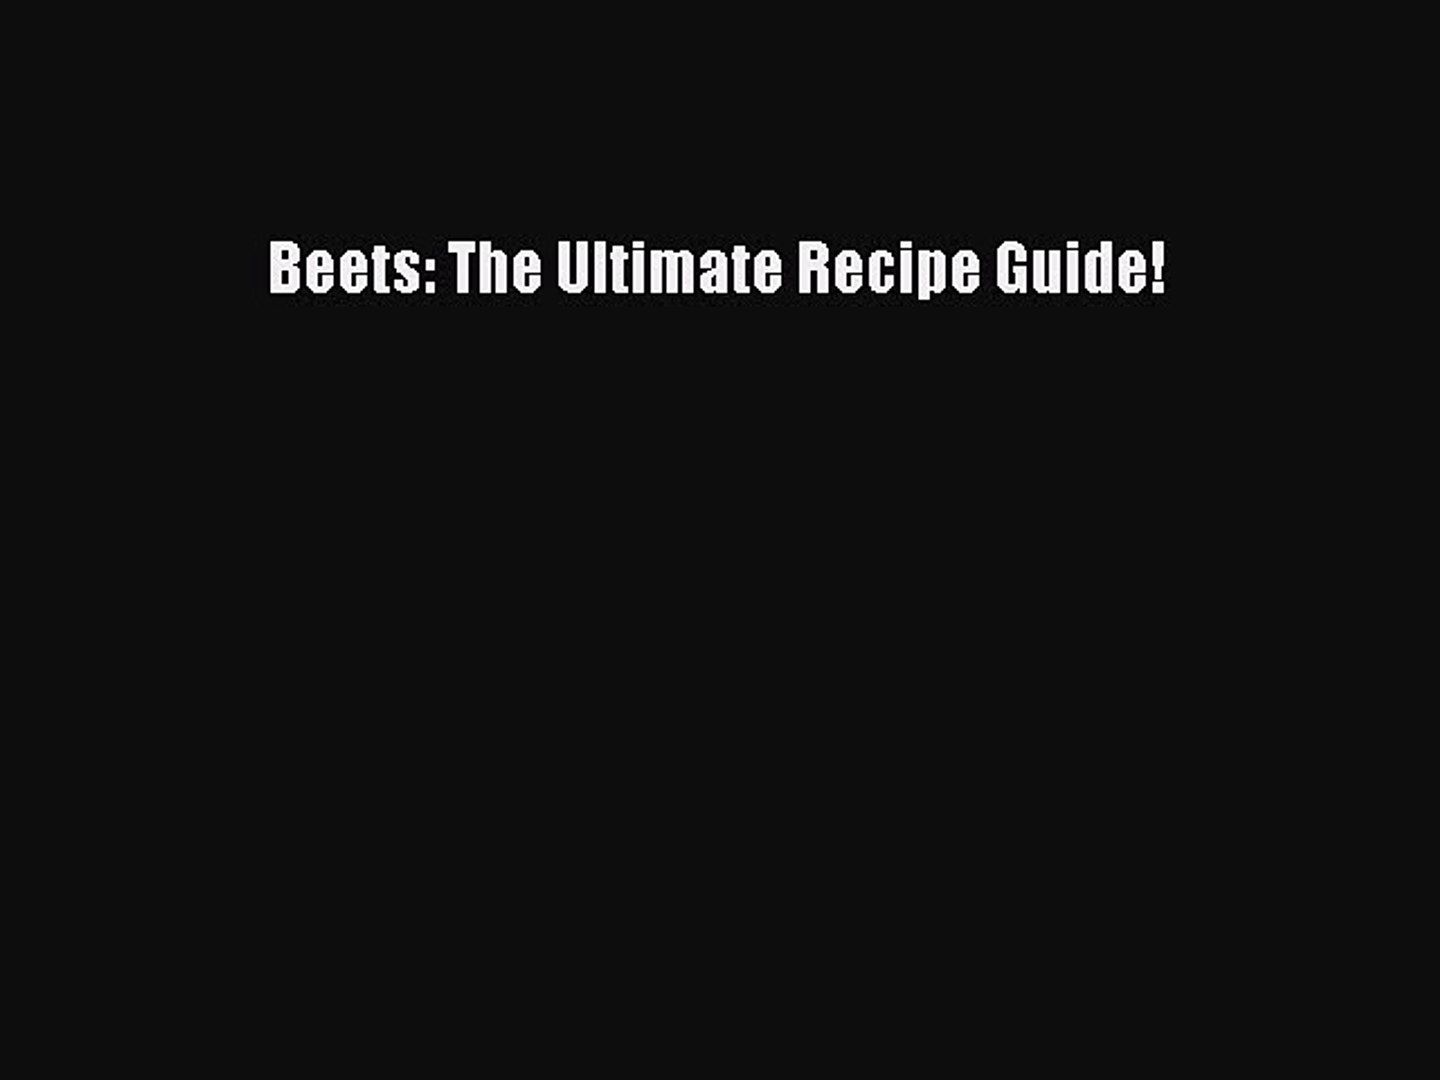 [Read Book] Beets: The Ultimate Recipe Guide!  EBook